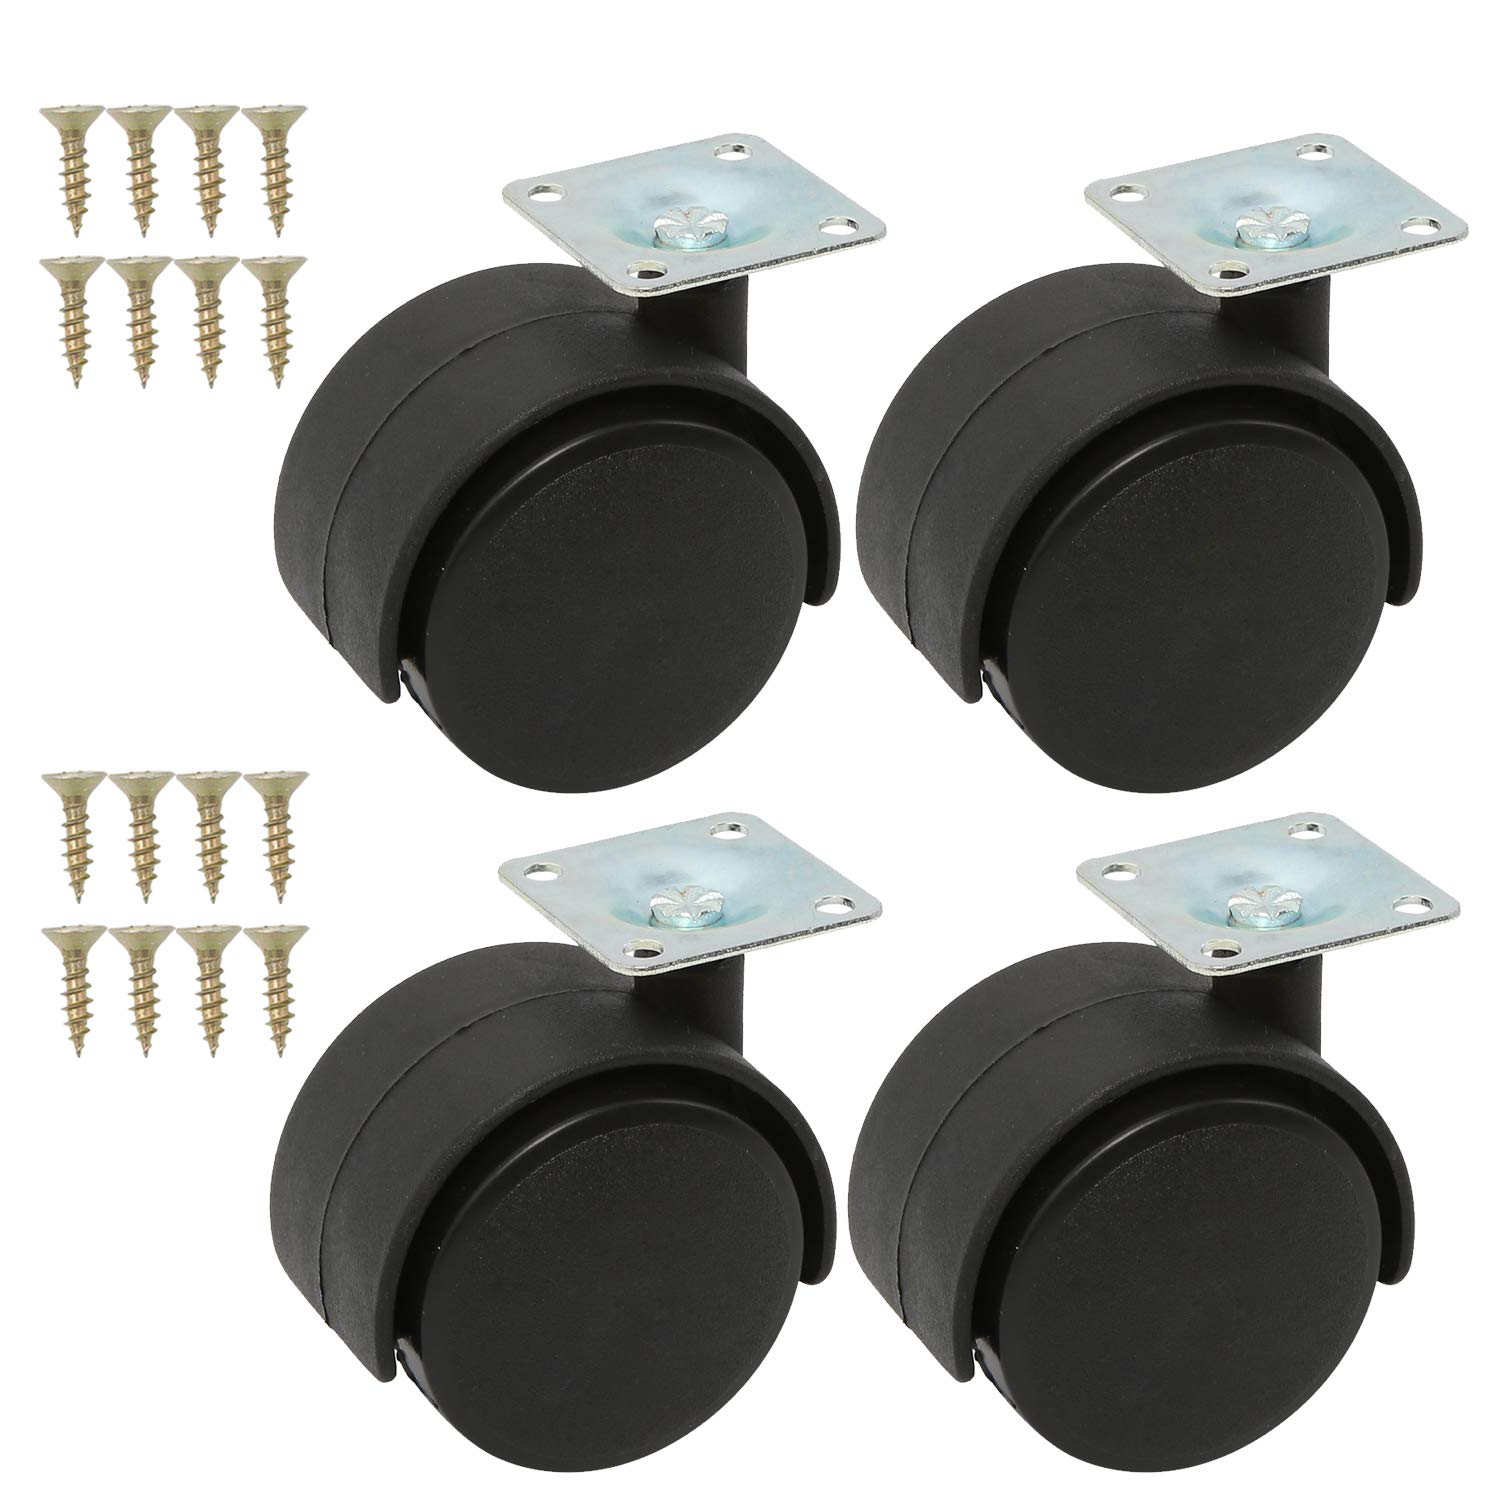 Homend 4Pack 2Inch Black Nylon Twin Wheel Swivel Plate Caster with 16 Screw,360 Degree Rotation,Set of 4